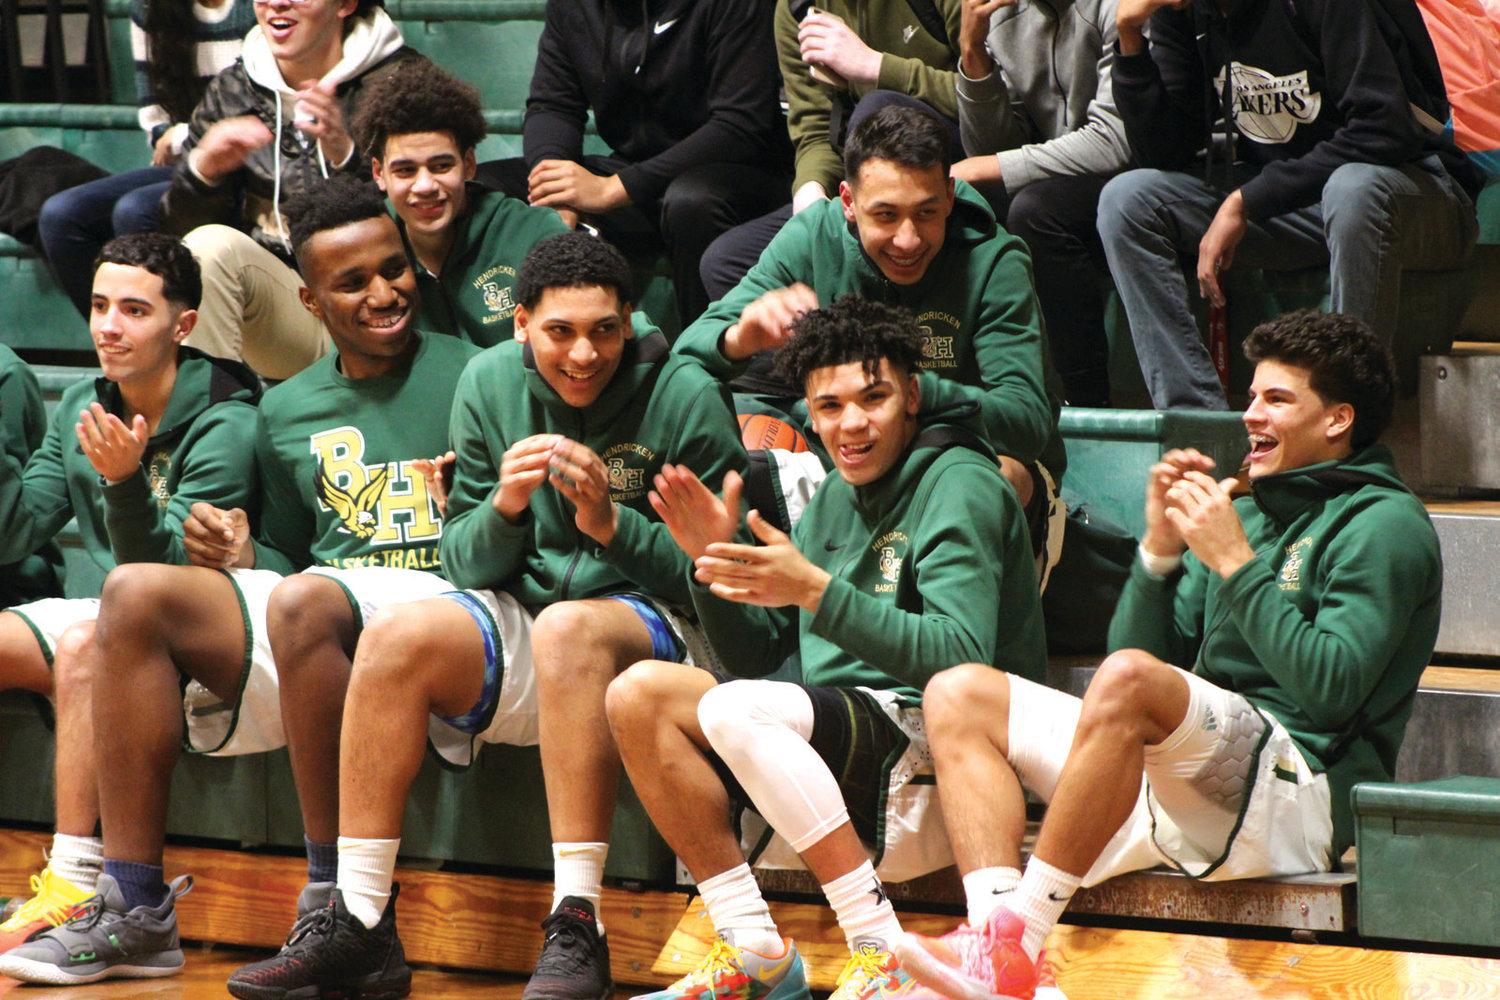 READY FOR BATTLE: Members of the Bishop Hendricken basketball team celebrate during the team's senior night last week.